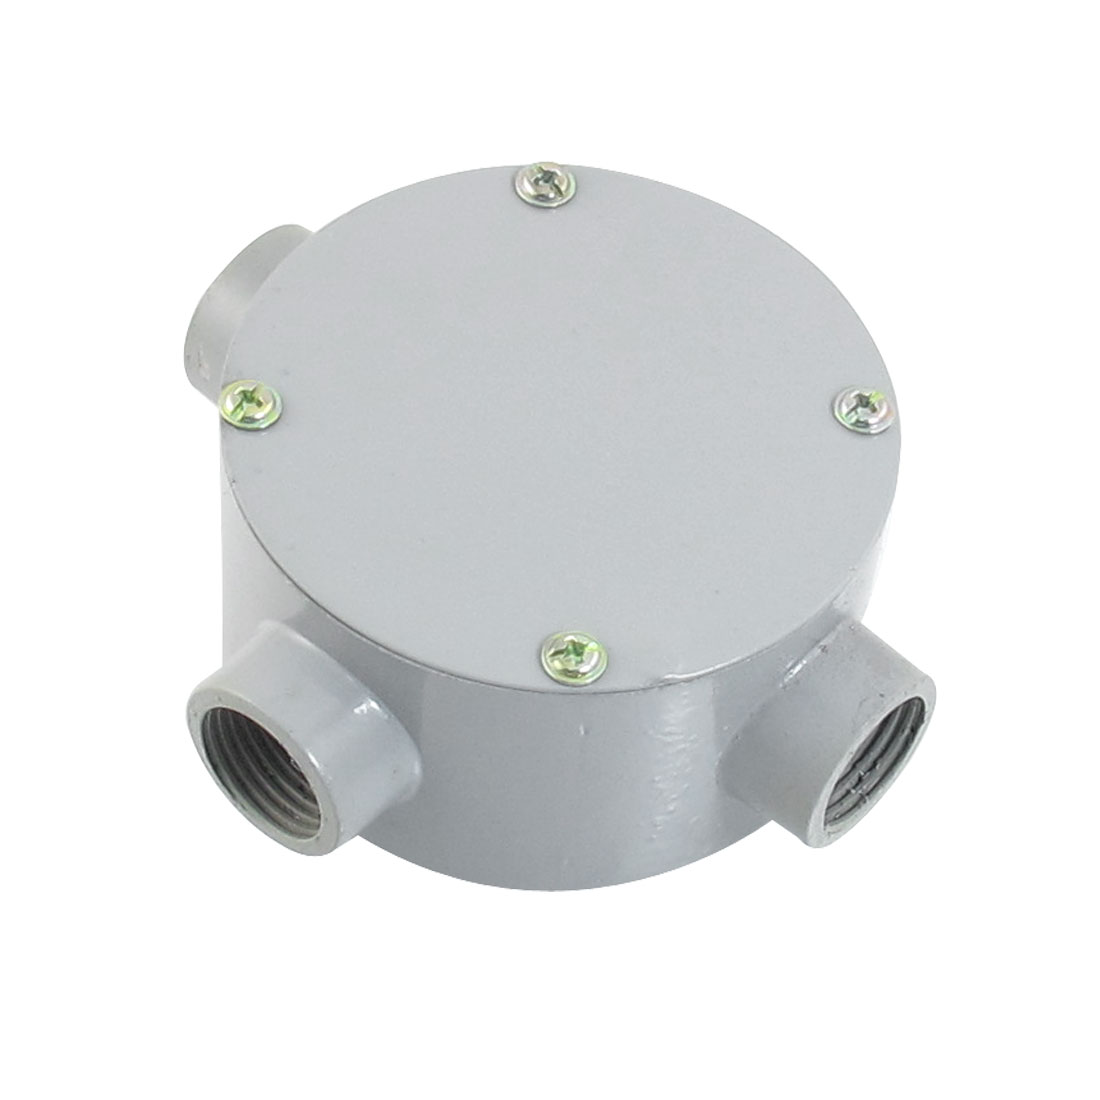 "G1/2"" Right Angle Three Hole Connecting Metal Round Junction Box"